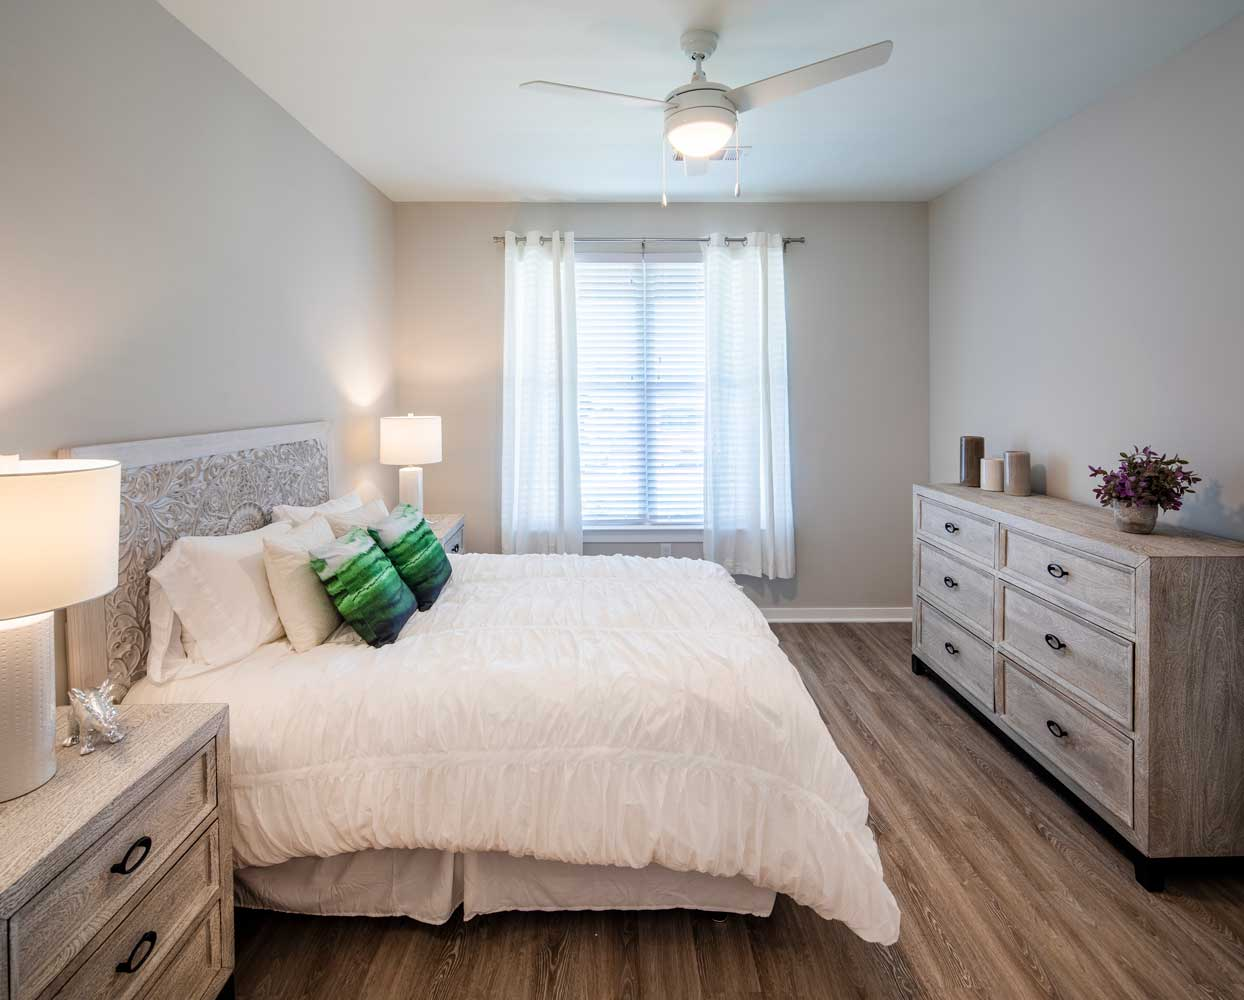 Bedroom with Ceiling Fan at Sawgrass Point in Gonzales, Louisiana